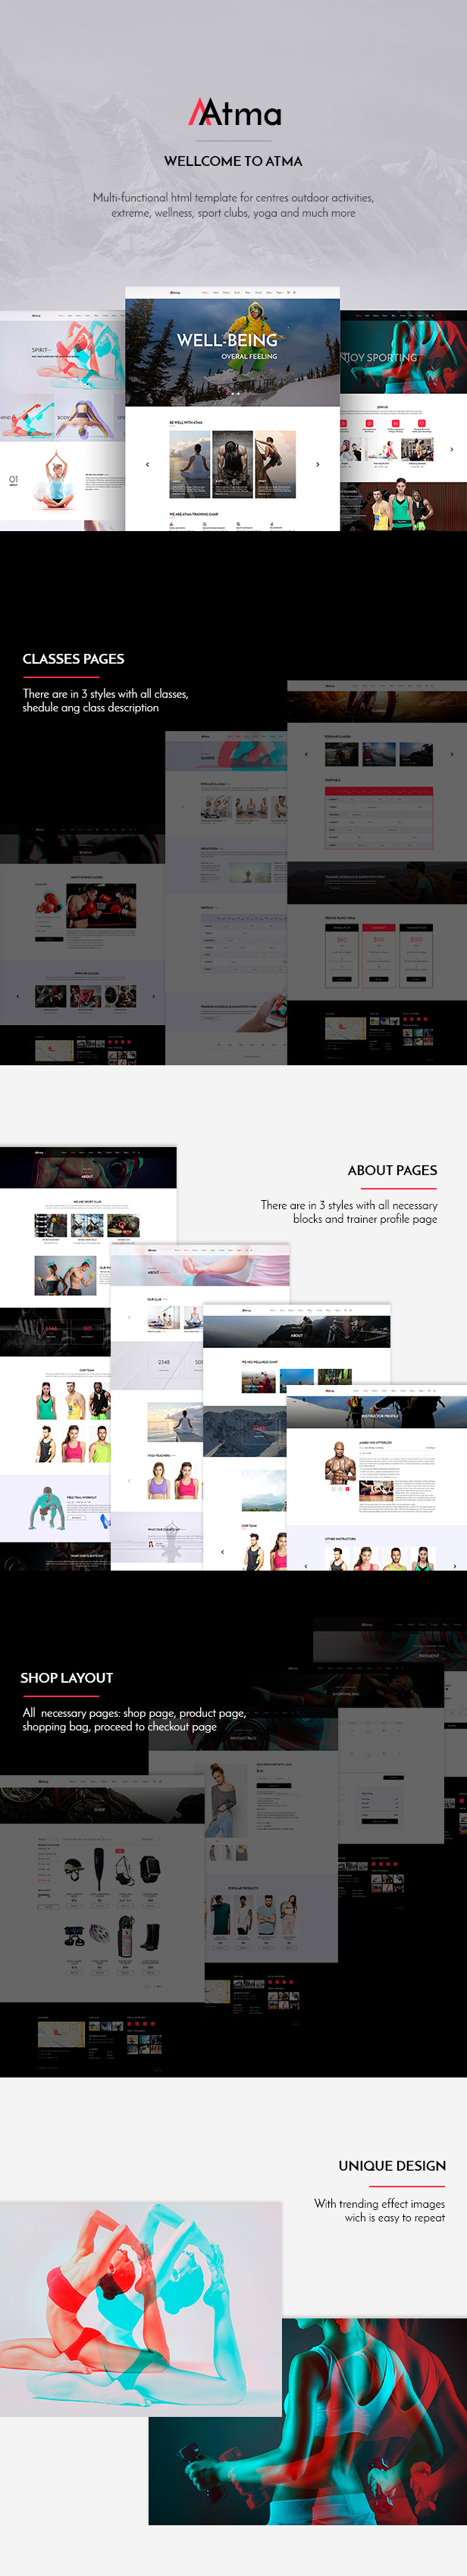 Perfect Yoga Website Template Photos - Examples Professional Resume ...